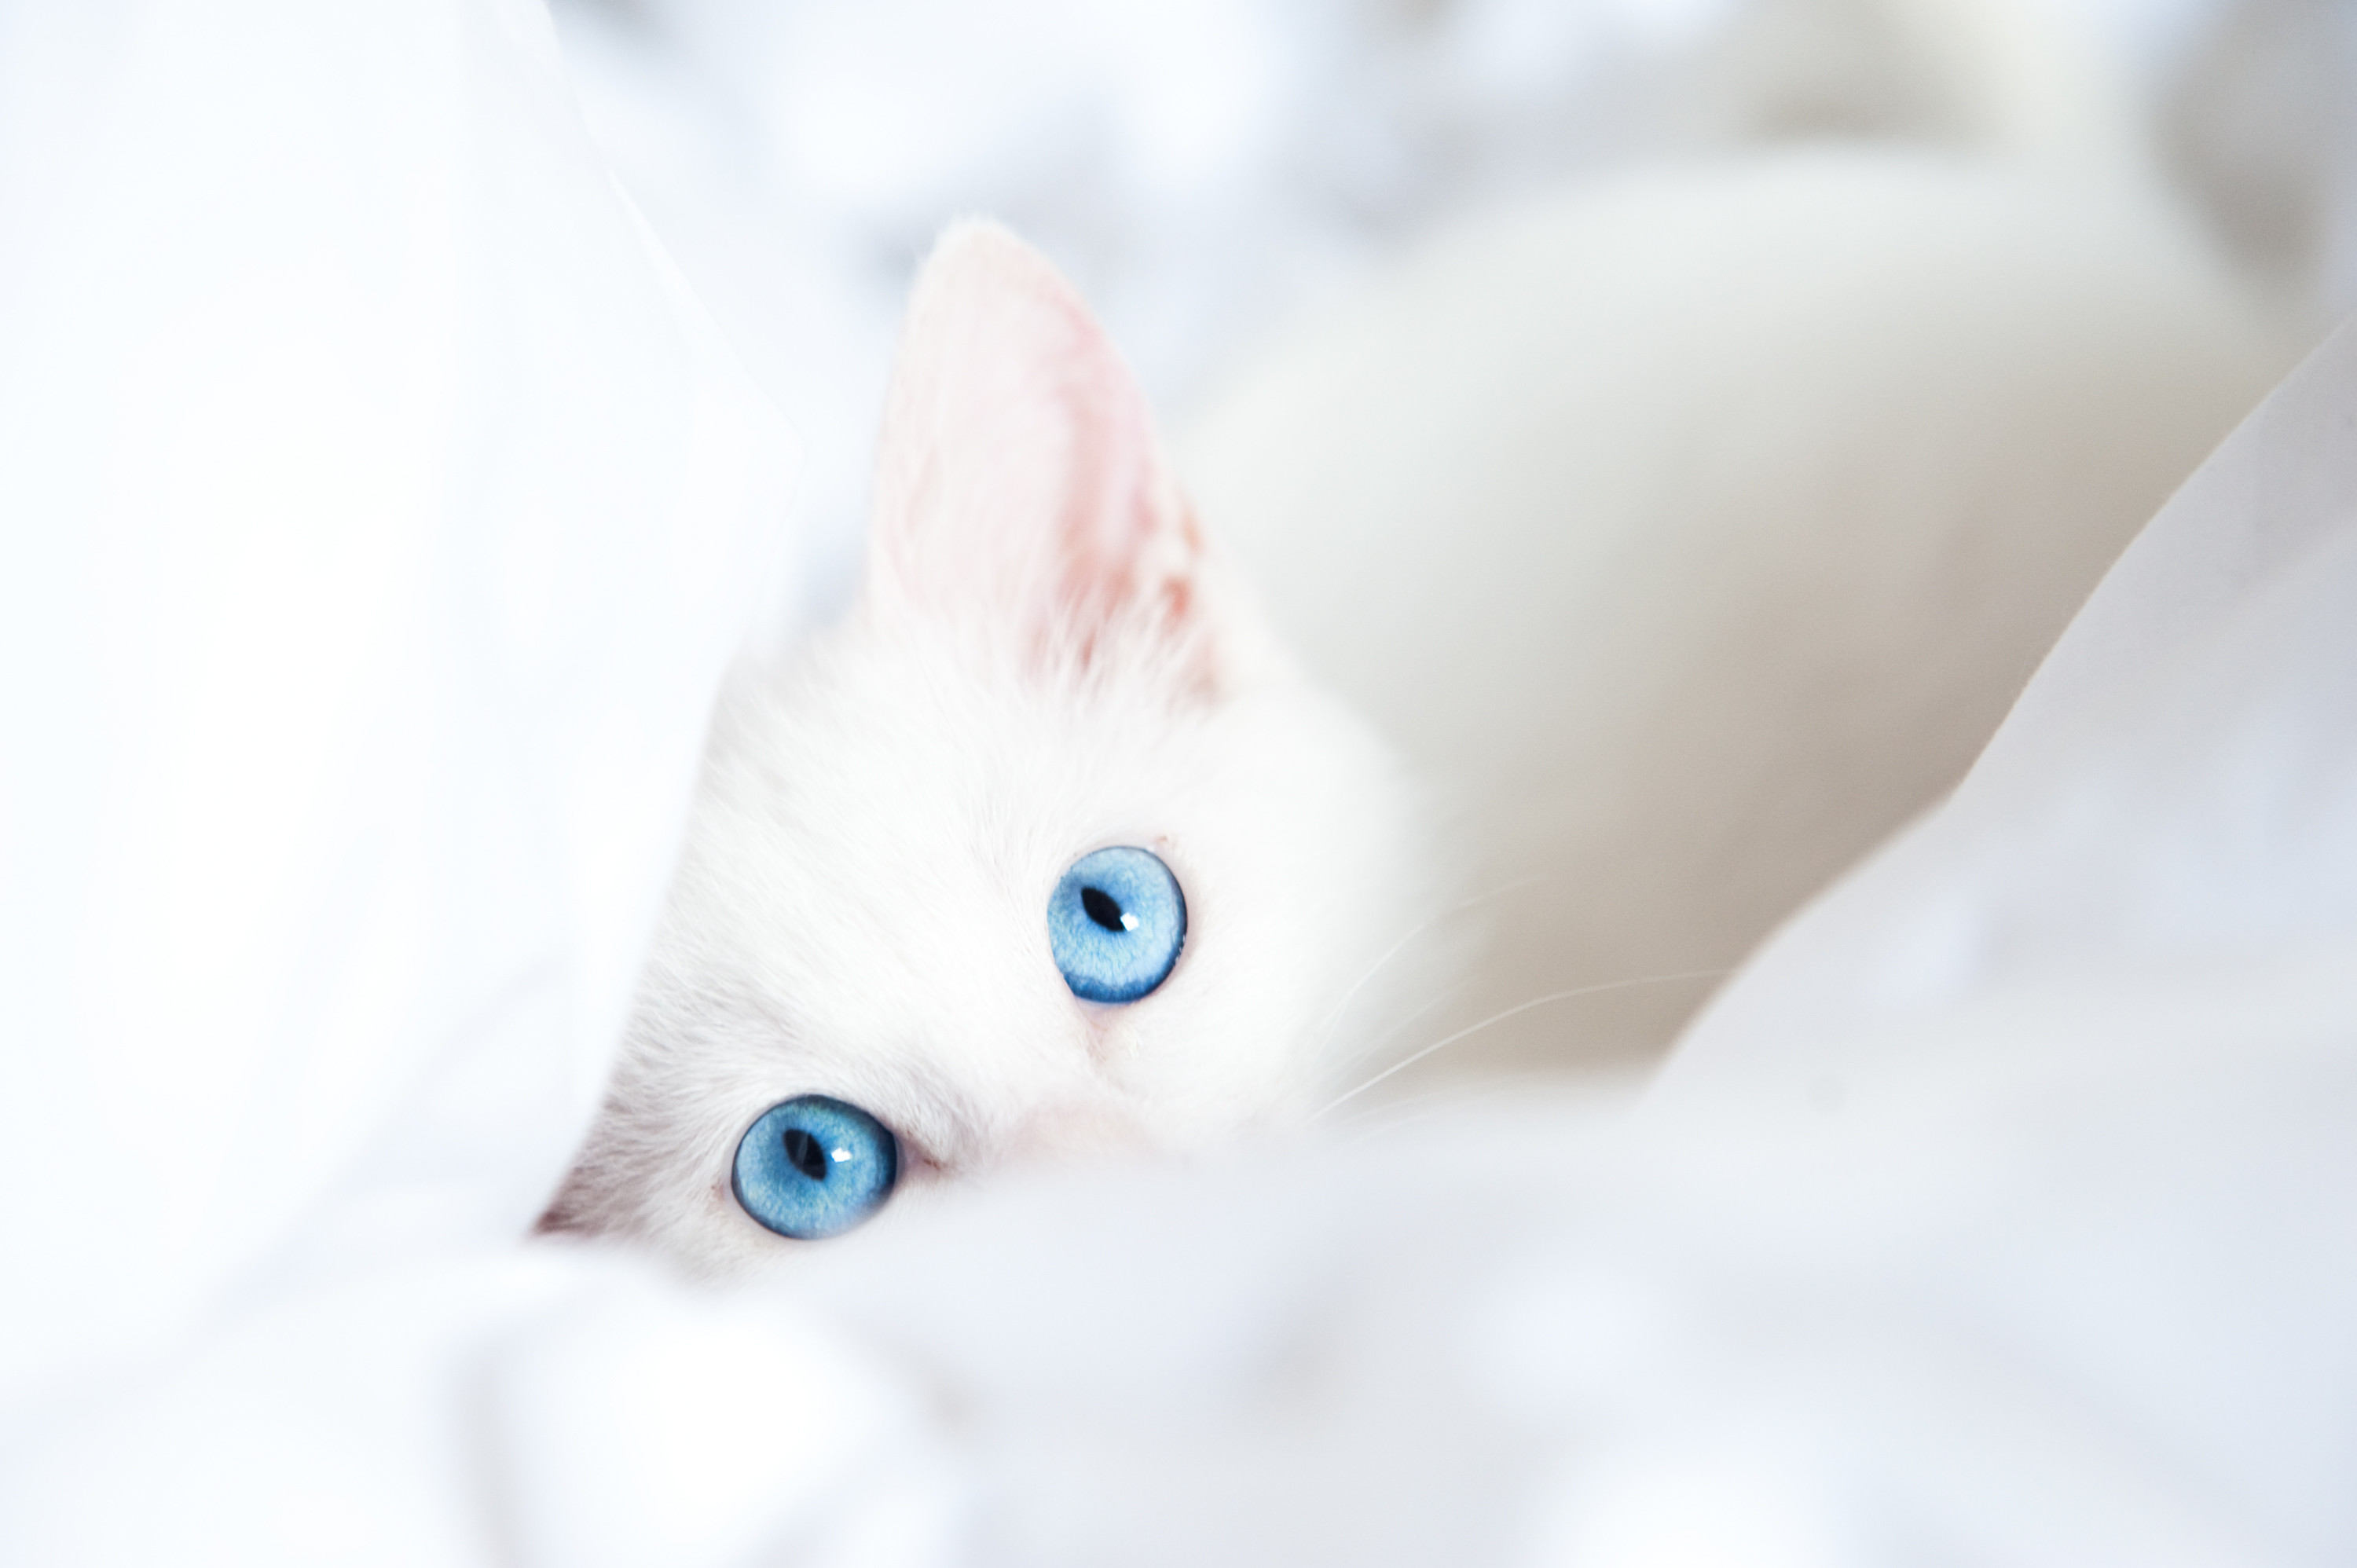 3000x1996 Cats Eyes Glance White Animals kitten kittens baby wallpaper .